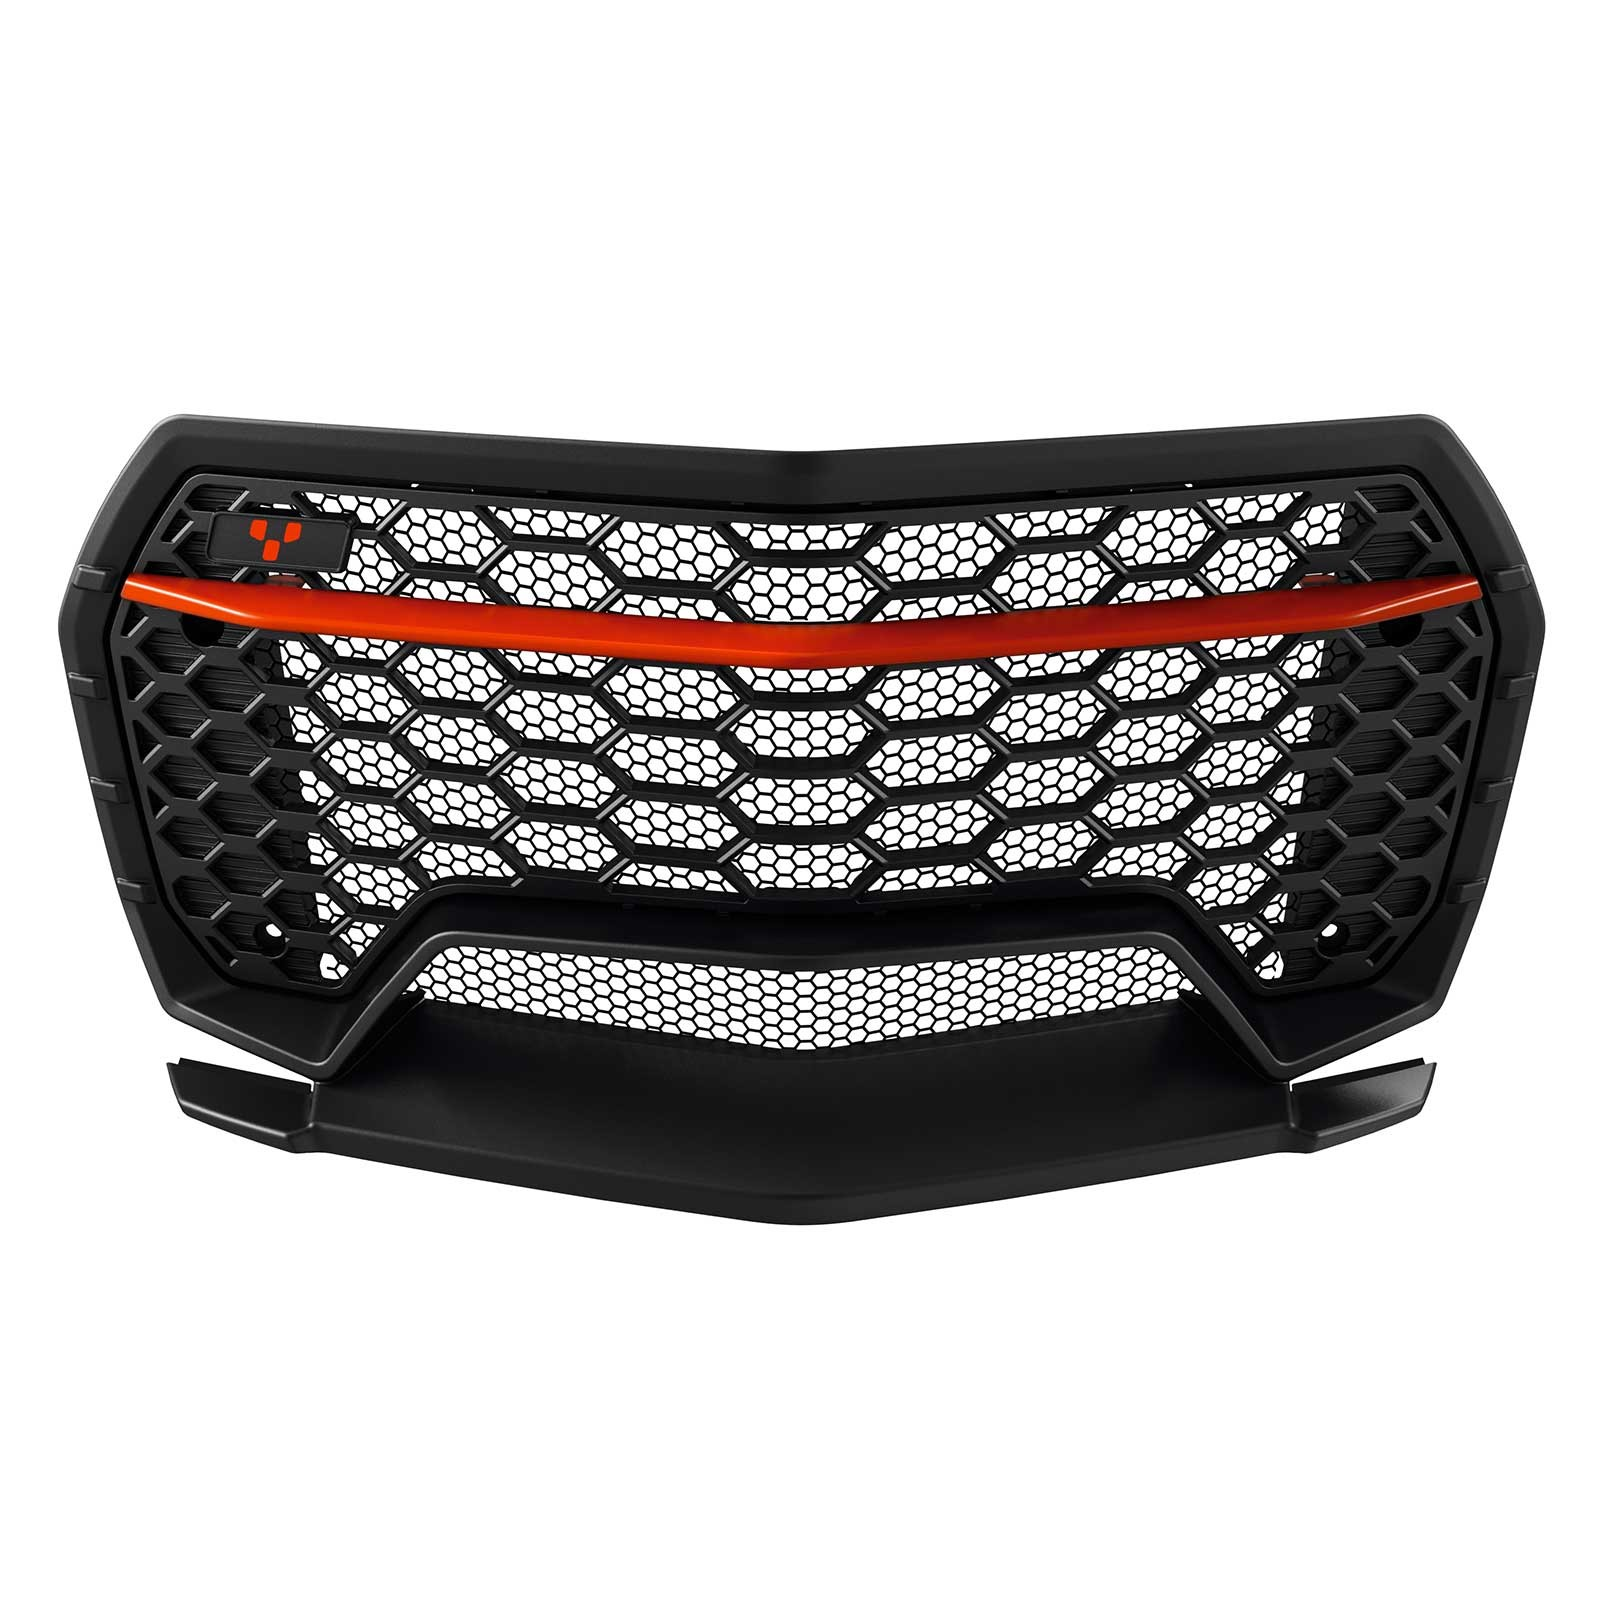 Accesorii custom Can-am  Bombardier Super Sport Grille for All Spyder F3 models